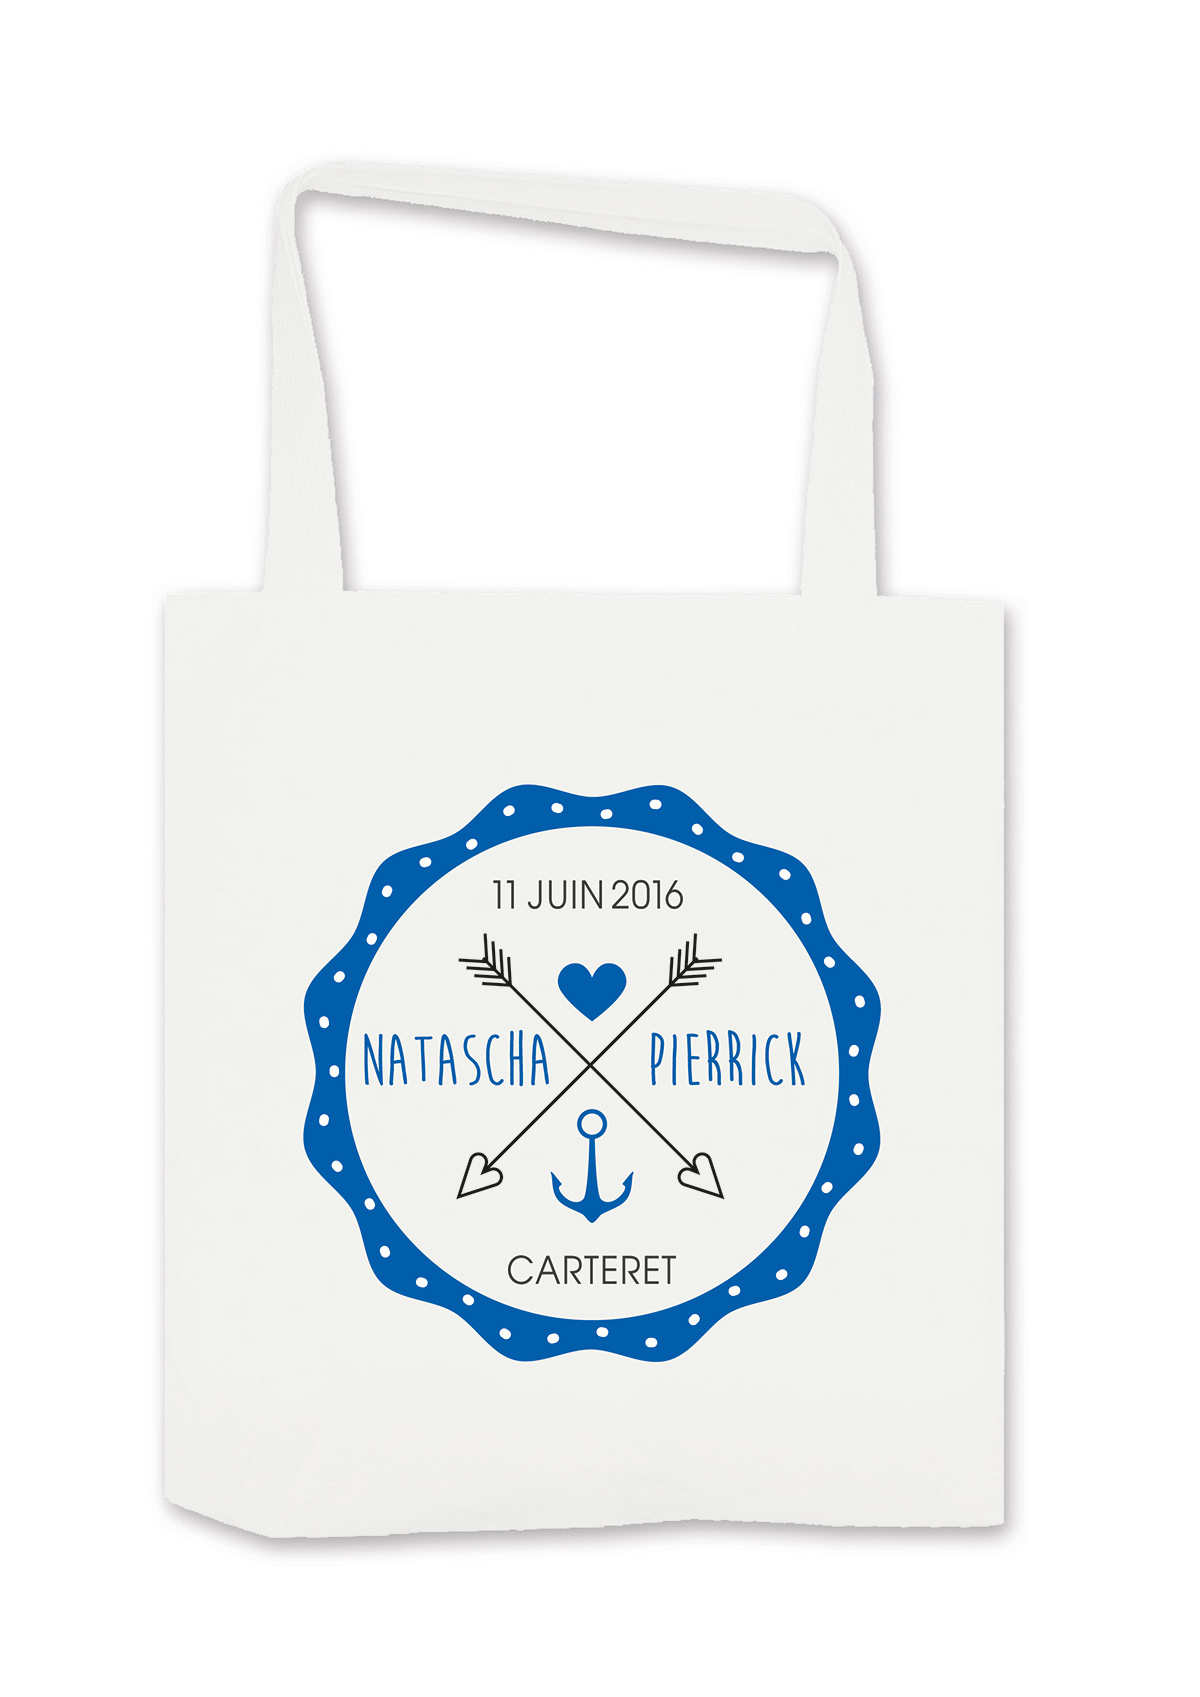 Tote Bags Mode typograpy graphisme wedding